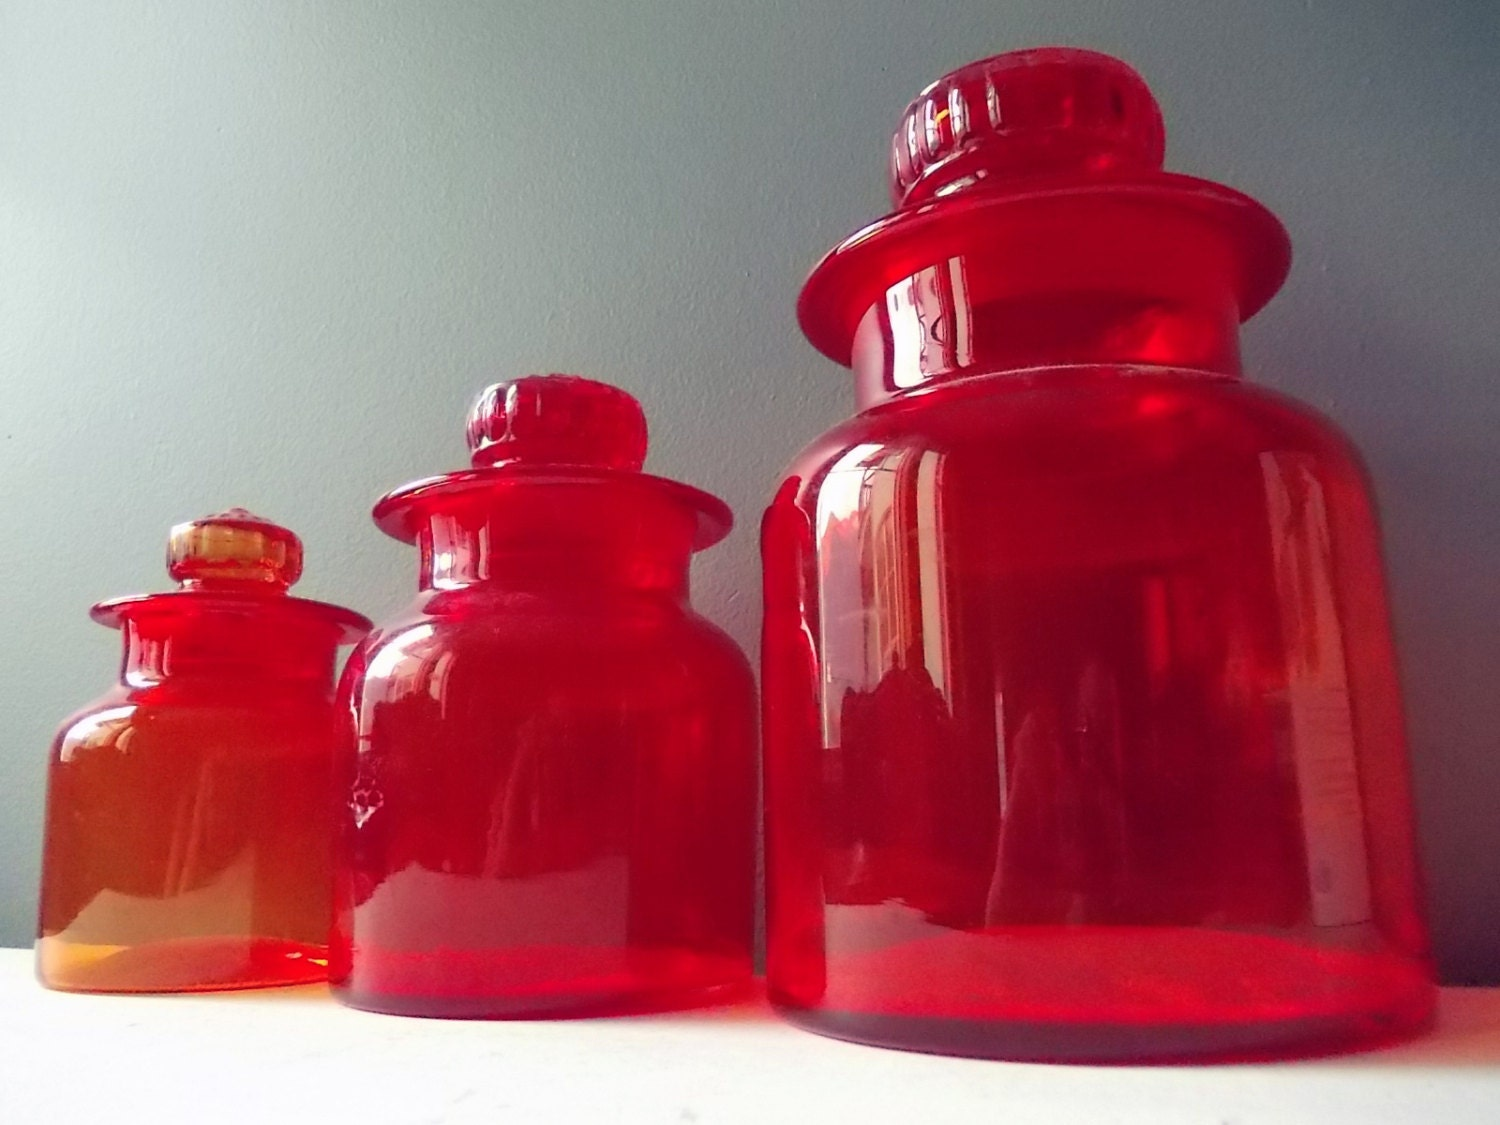 28 red glass kitchen canisters ruby red tinted glass red glass kitchen canisters red glass kitchen canisters vintage by northernscoutvintage